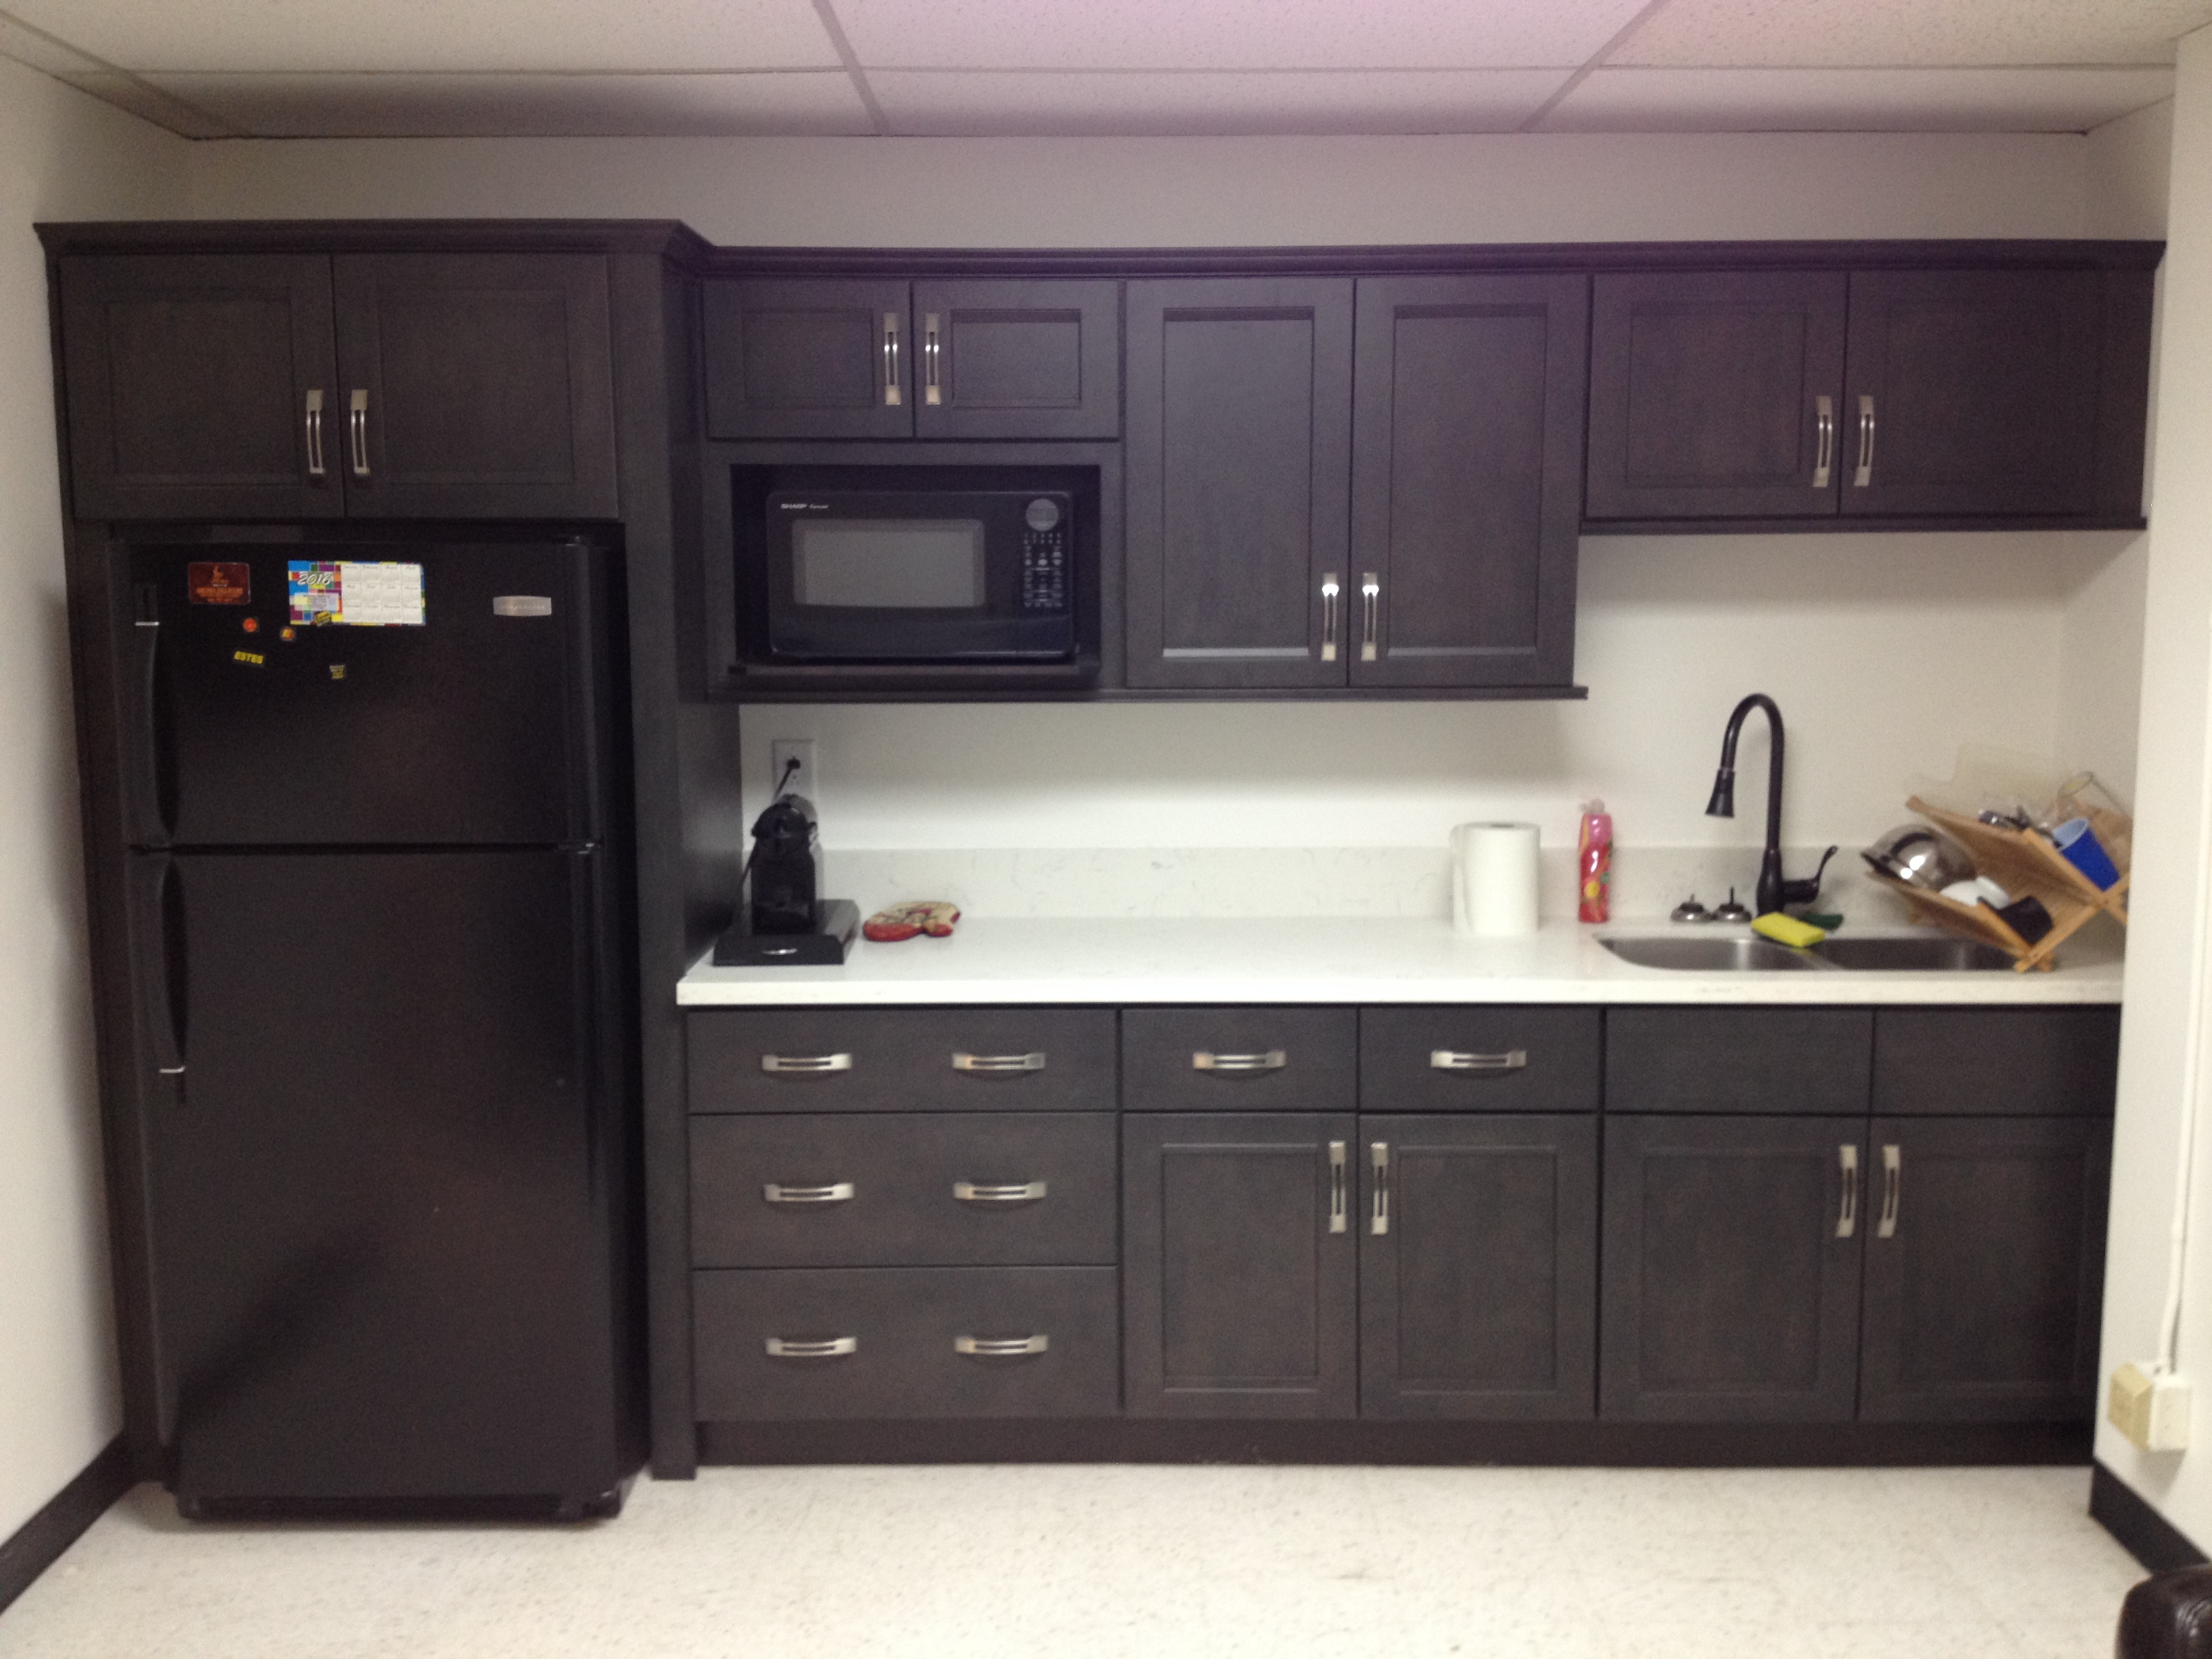 Kitchen Cabinet Handles 3 3/4 Shaker Pewter Kitchen Cabinets And Bathroom Vanities